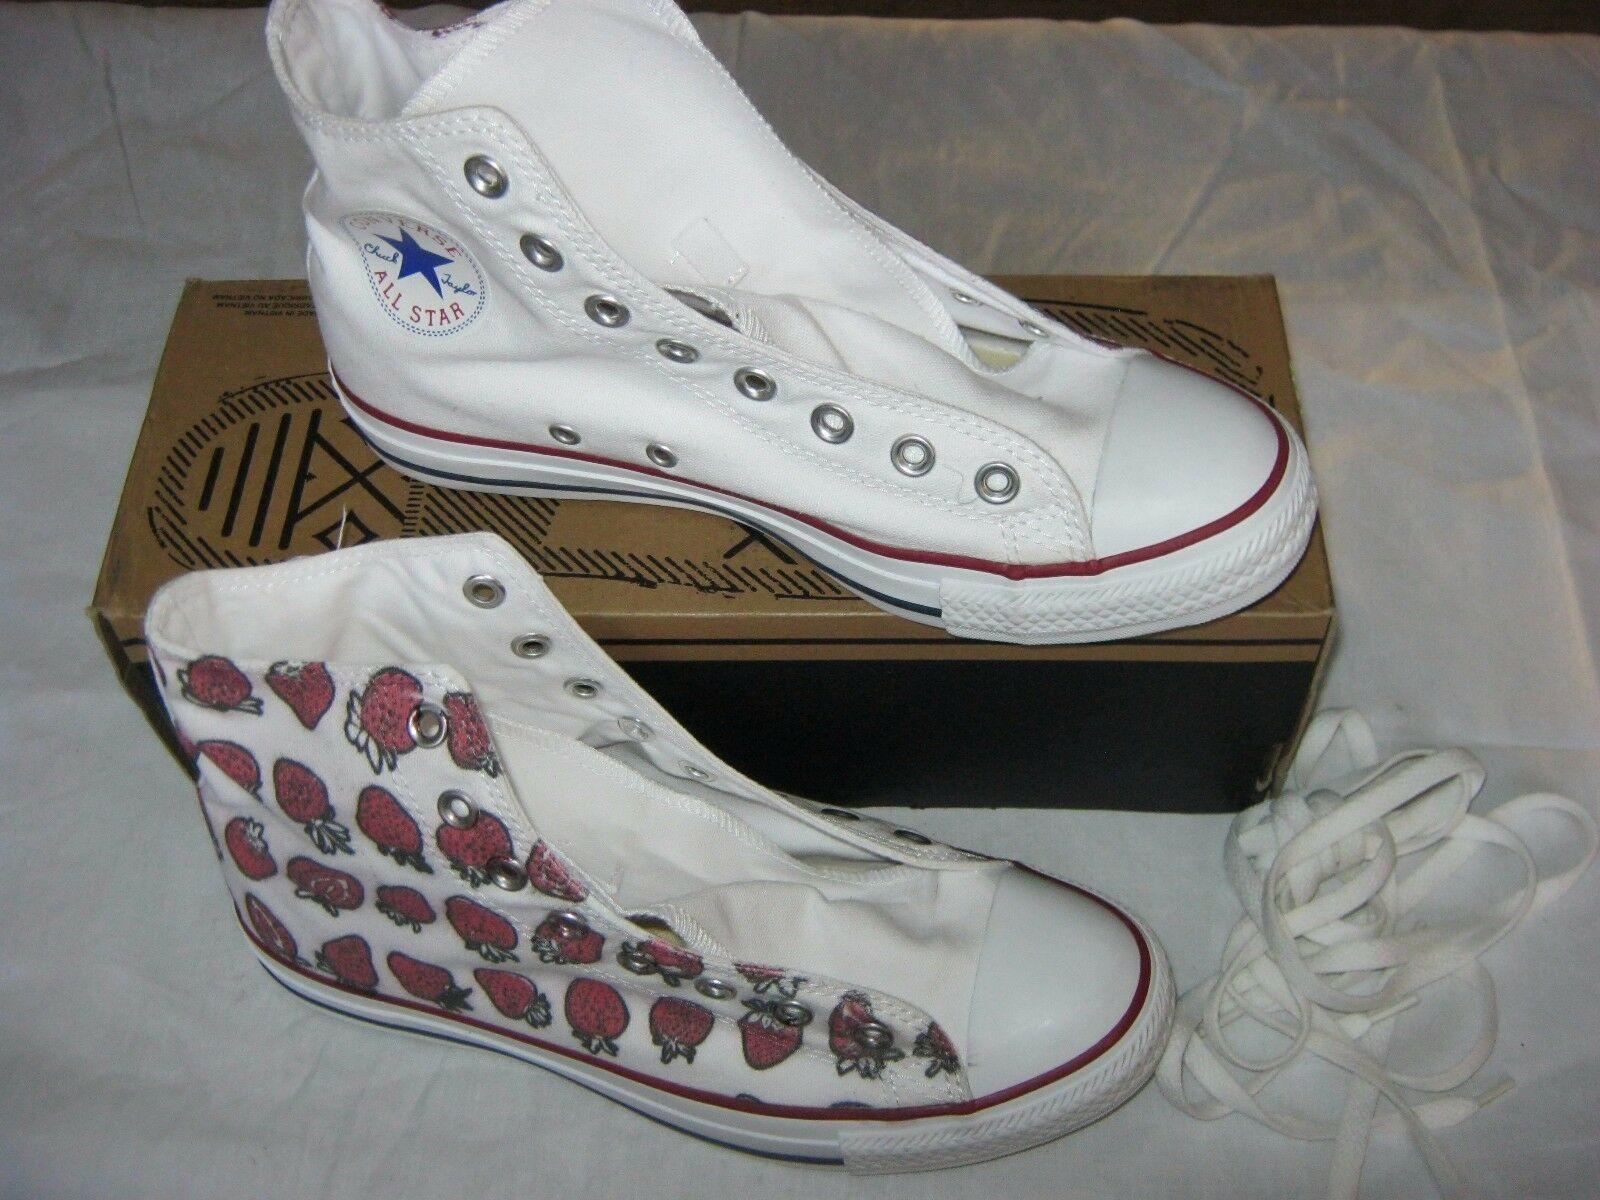 Converse All Star Chuck Taylor Custom Strawberry Print Hi Tops hommes 7 femmes 9